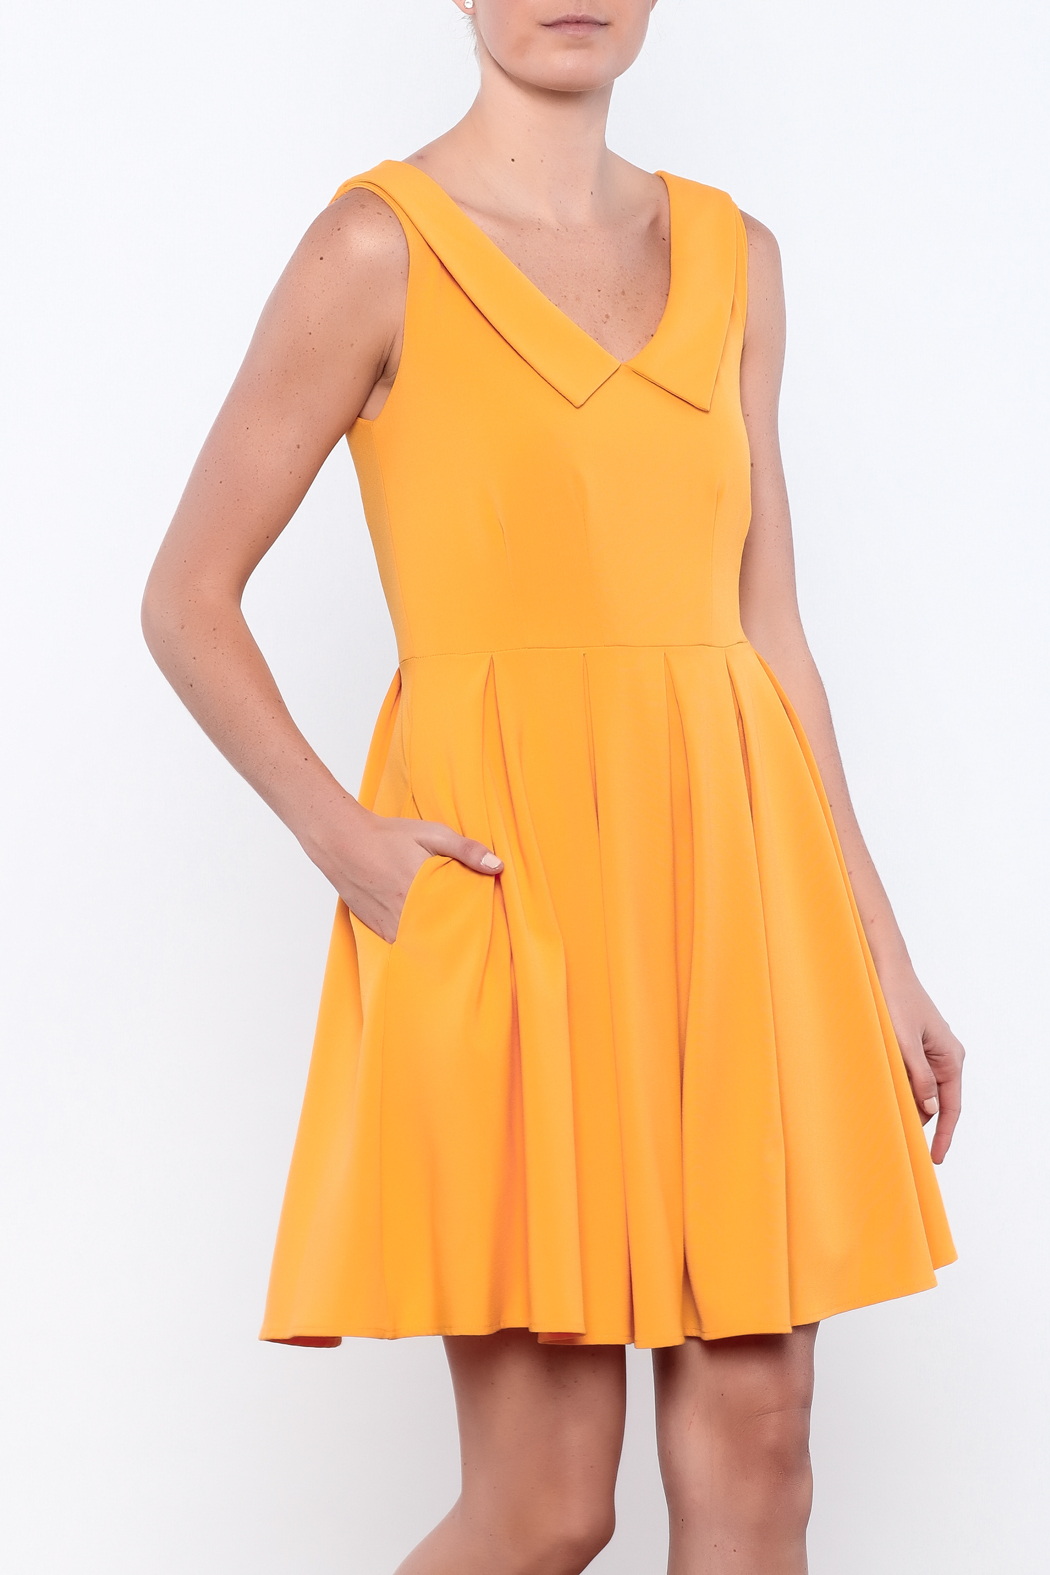 Apricity Mustard Sunday Dress - Main Image